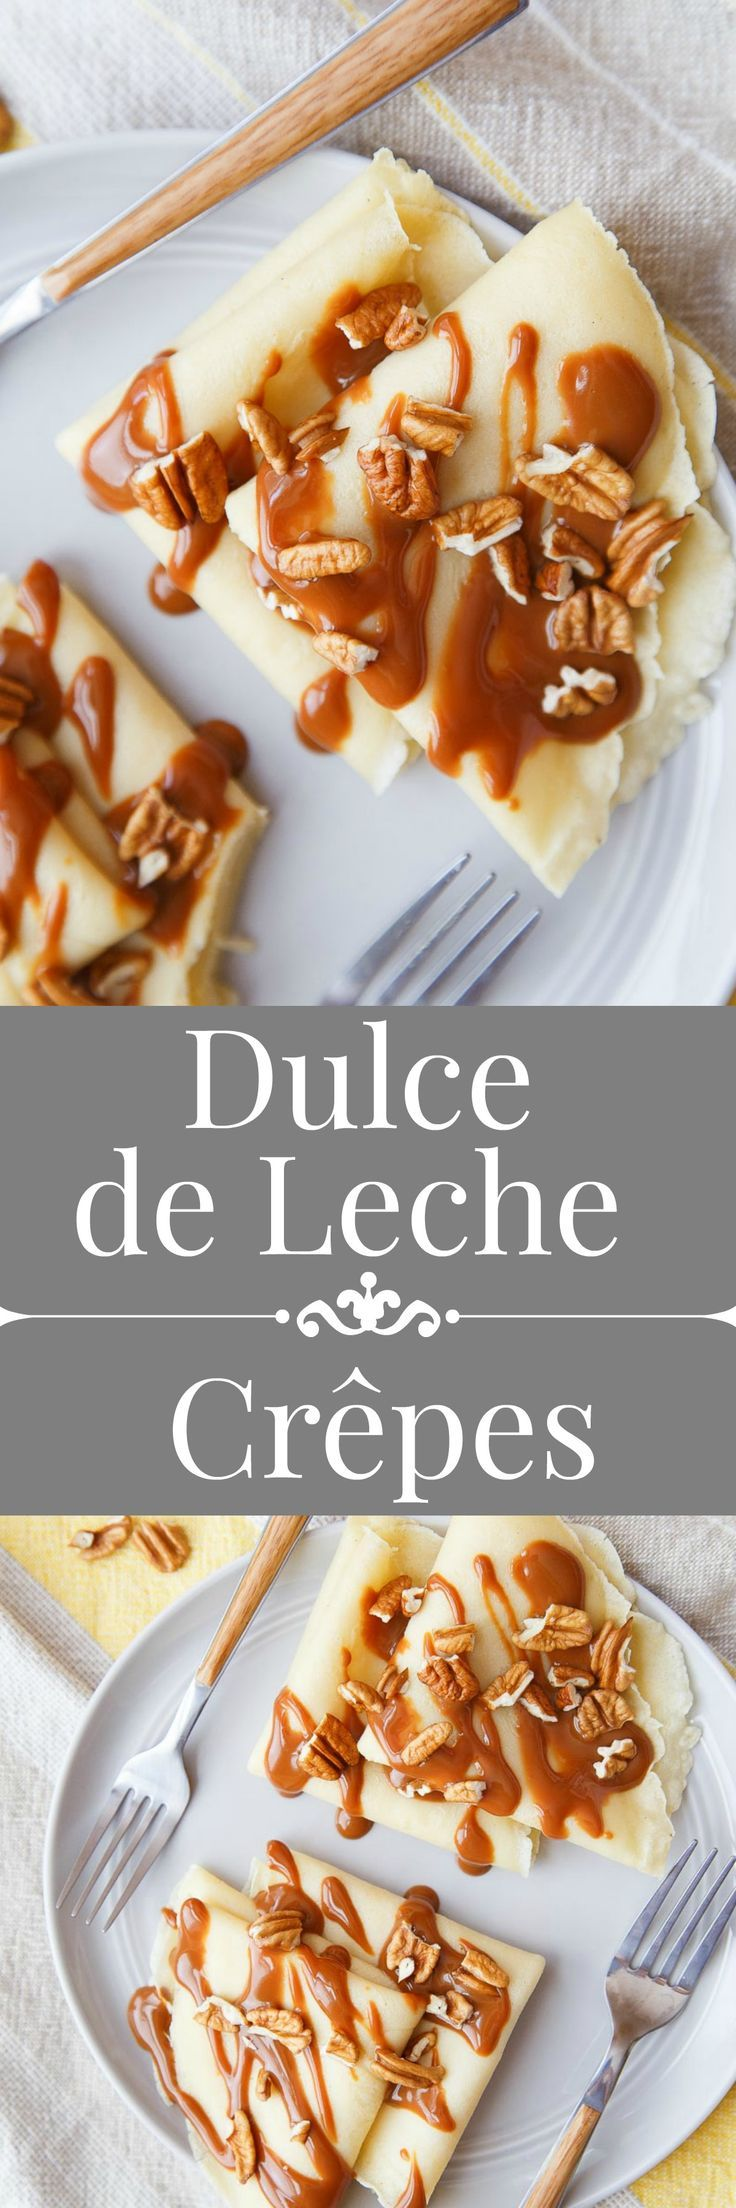 Homemade crepes made from scratch and filled with dulce de leche sauce ...